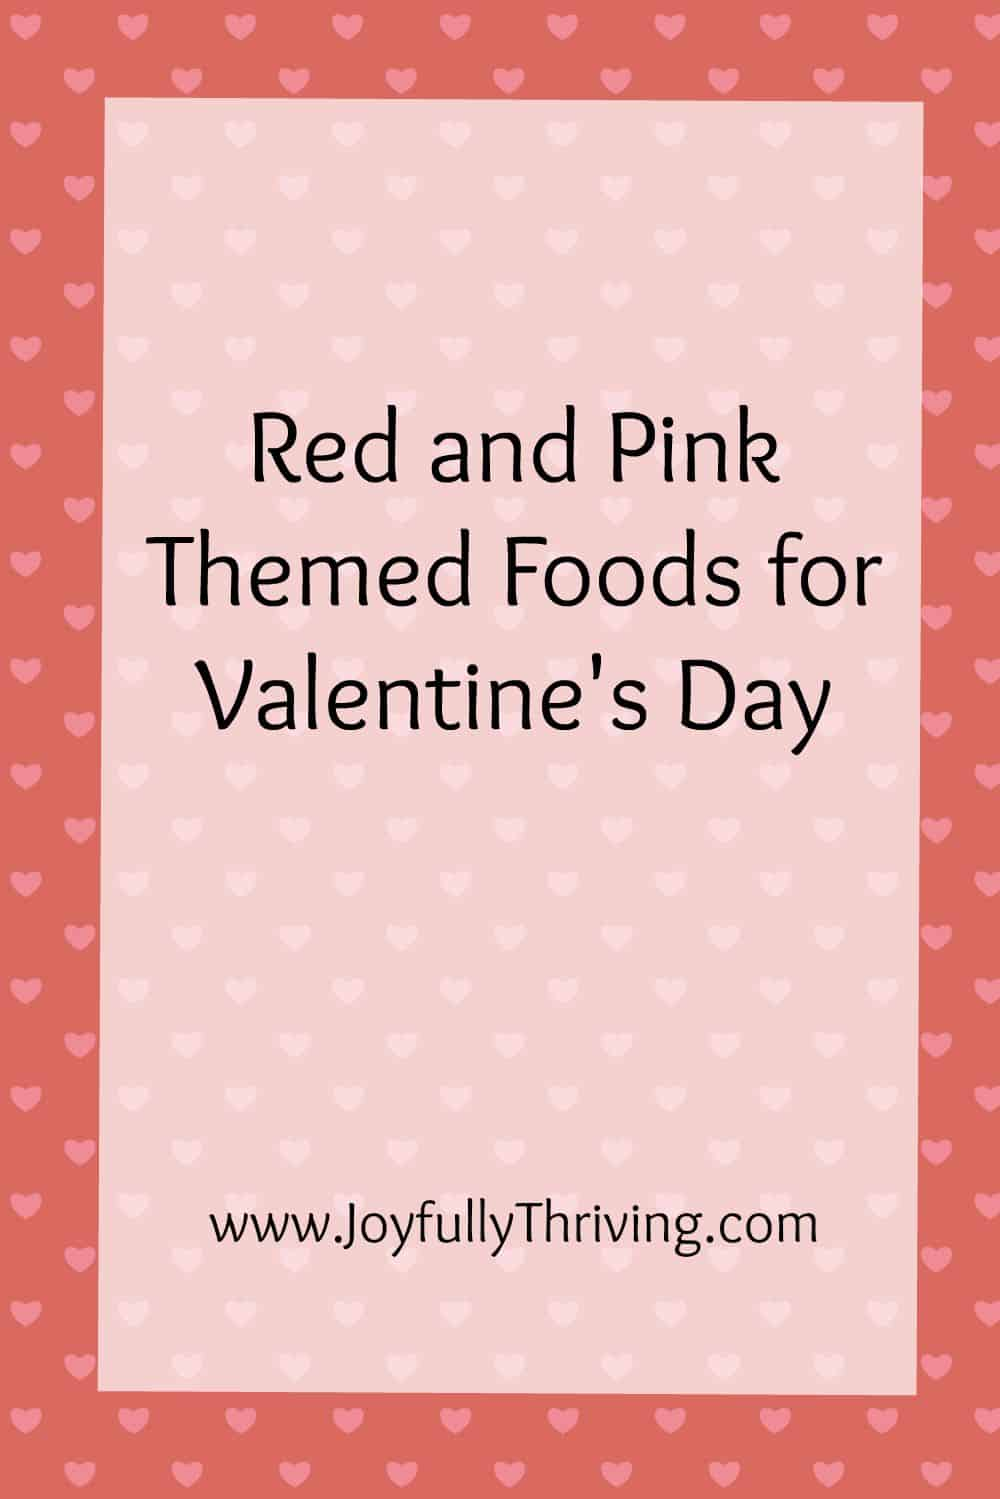 Red & Pink Themed Foods for Valentine's Day